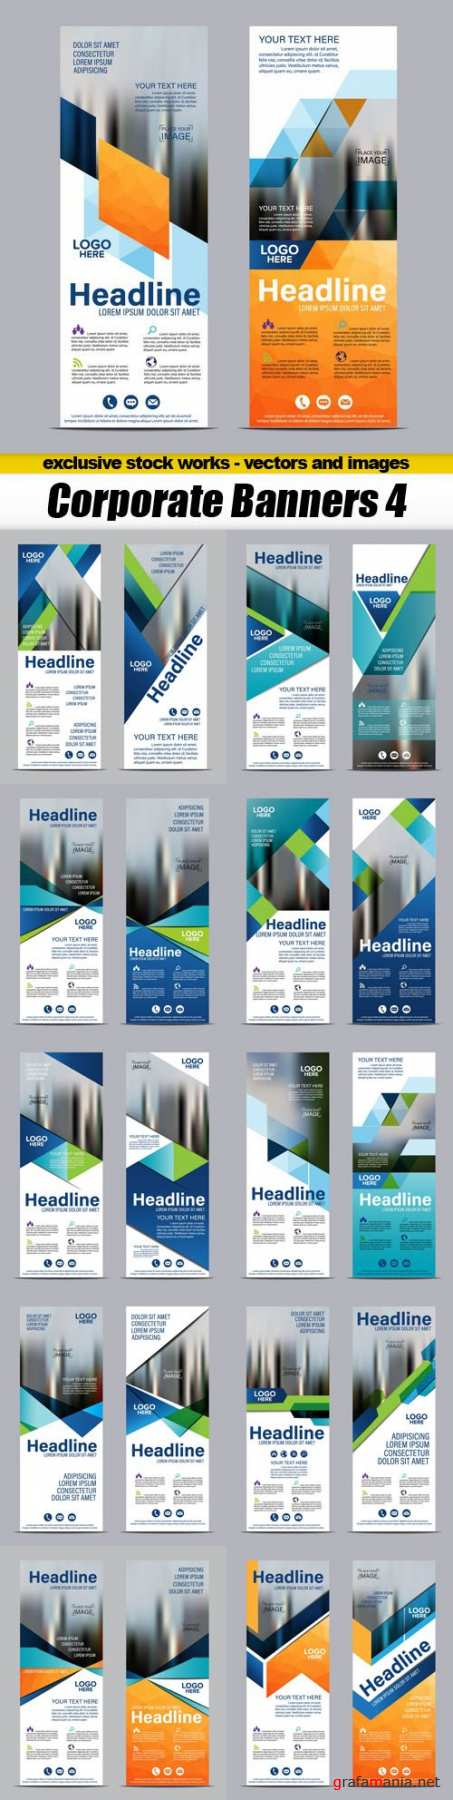 Corporate Banners 4 - 11xEPS